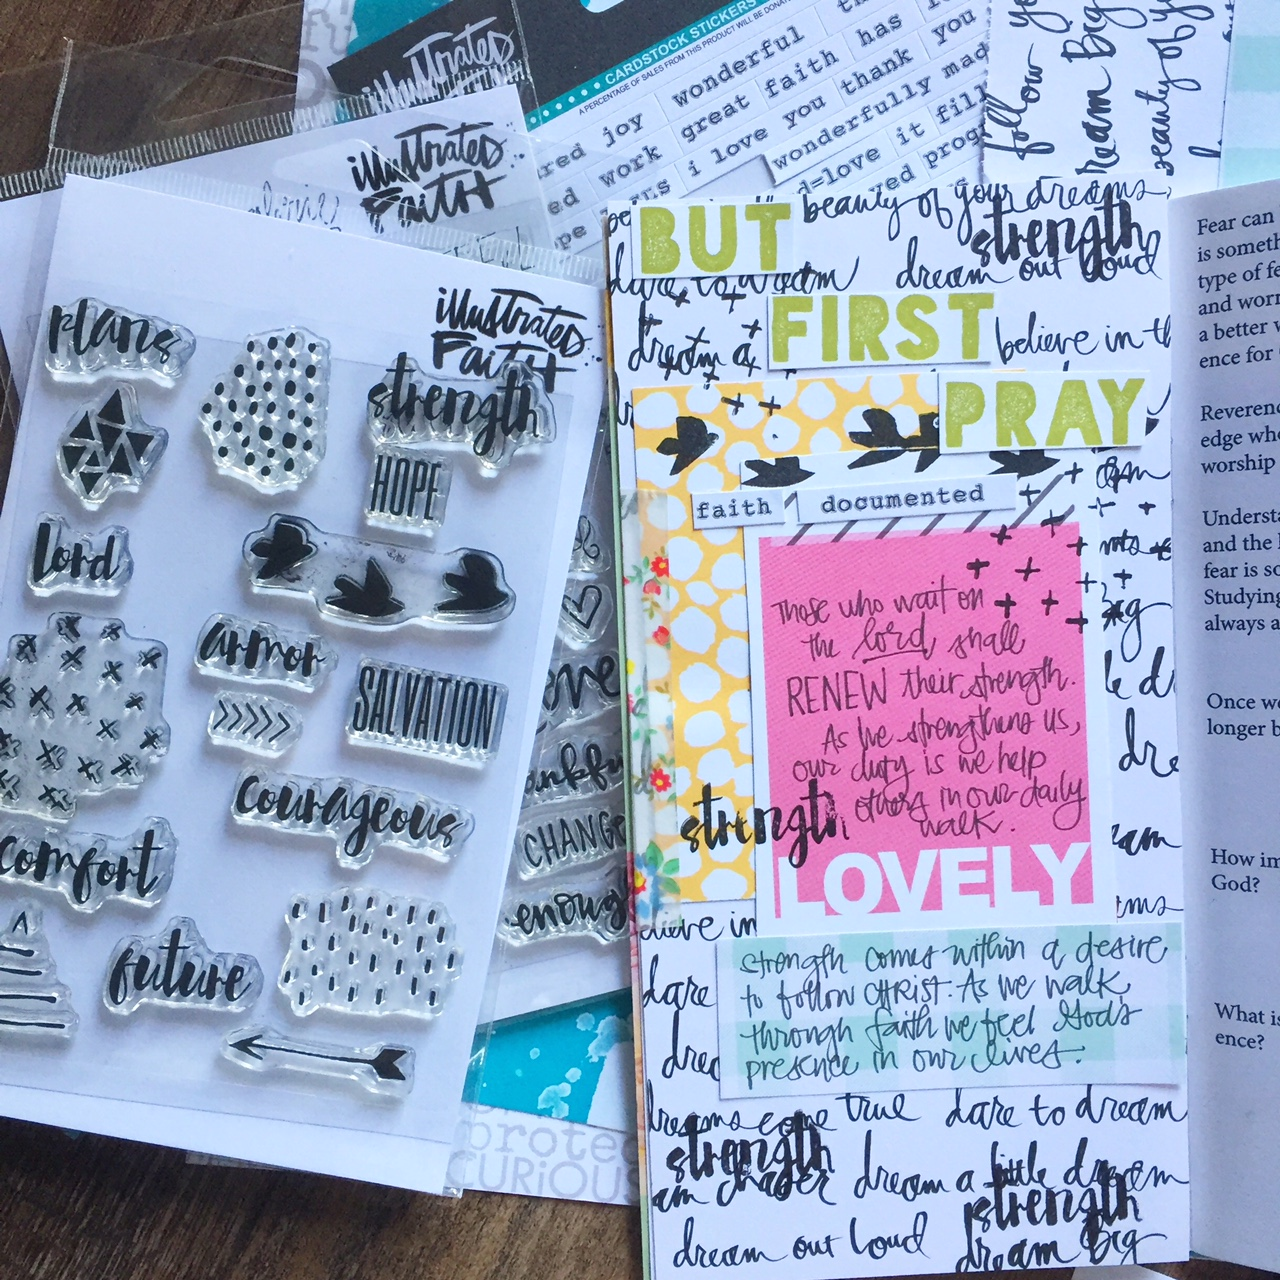 Florence Antonette is sharing a process video and her faith journaling using the Illustrated Faith His Love Never Fails devotional